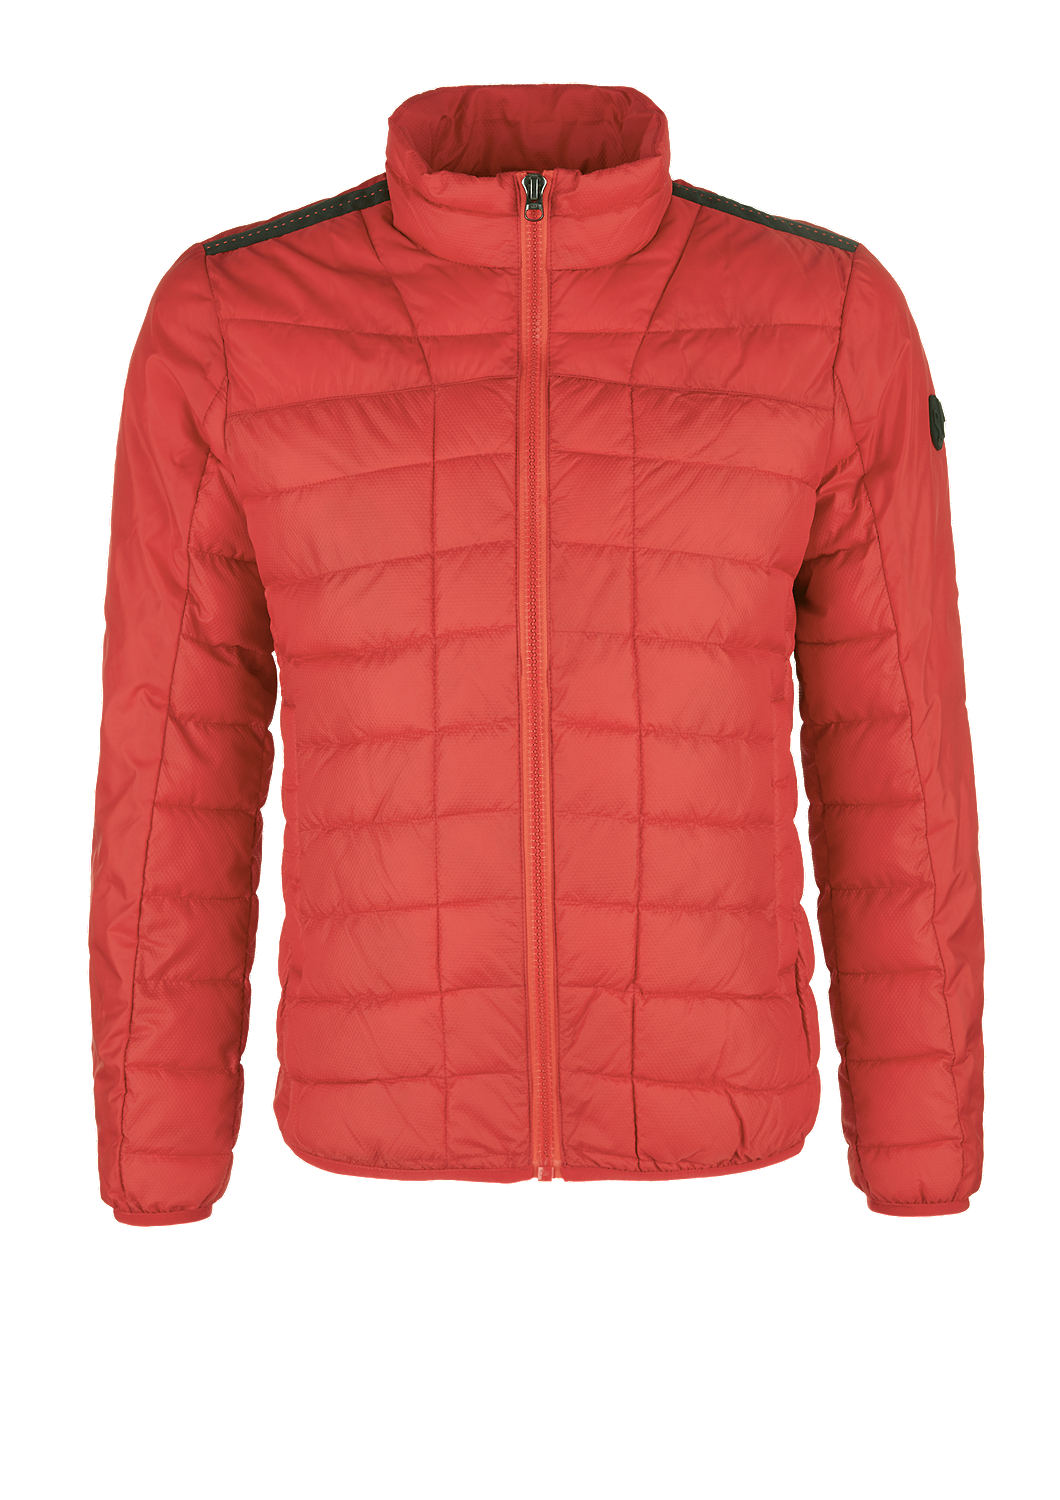 Funktionale Jacke 3M Thinsulate™ kaufen | s.Oliver Shop